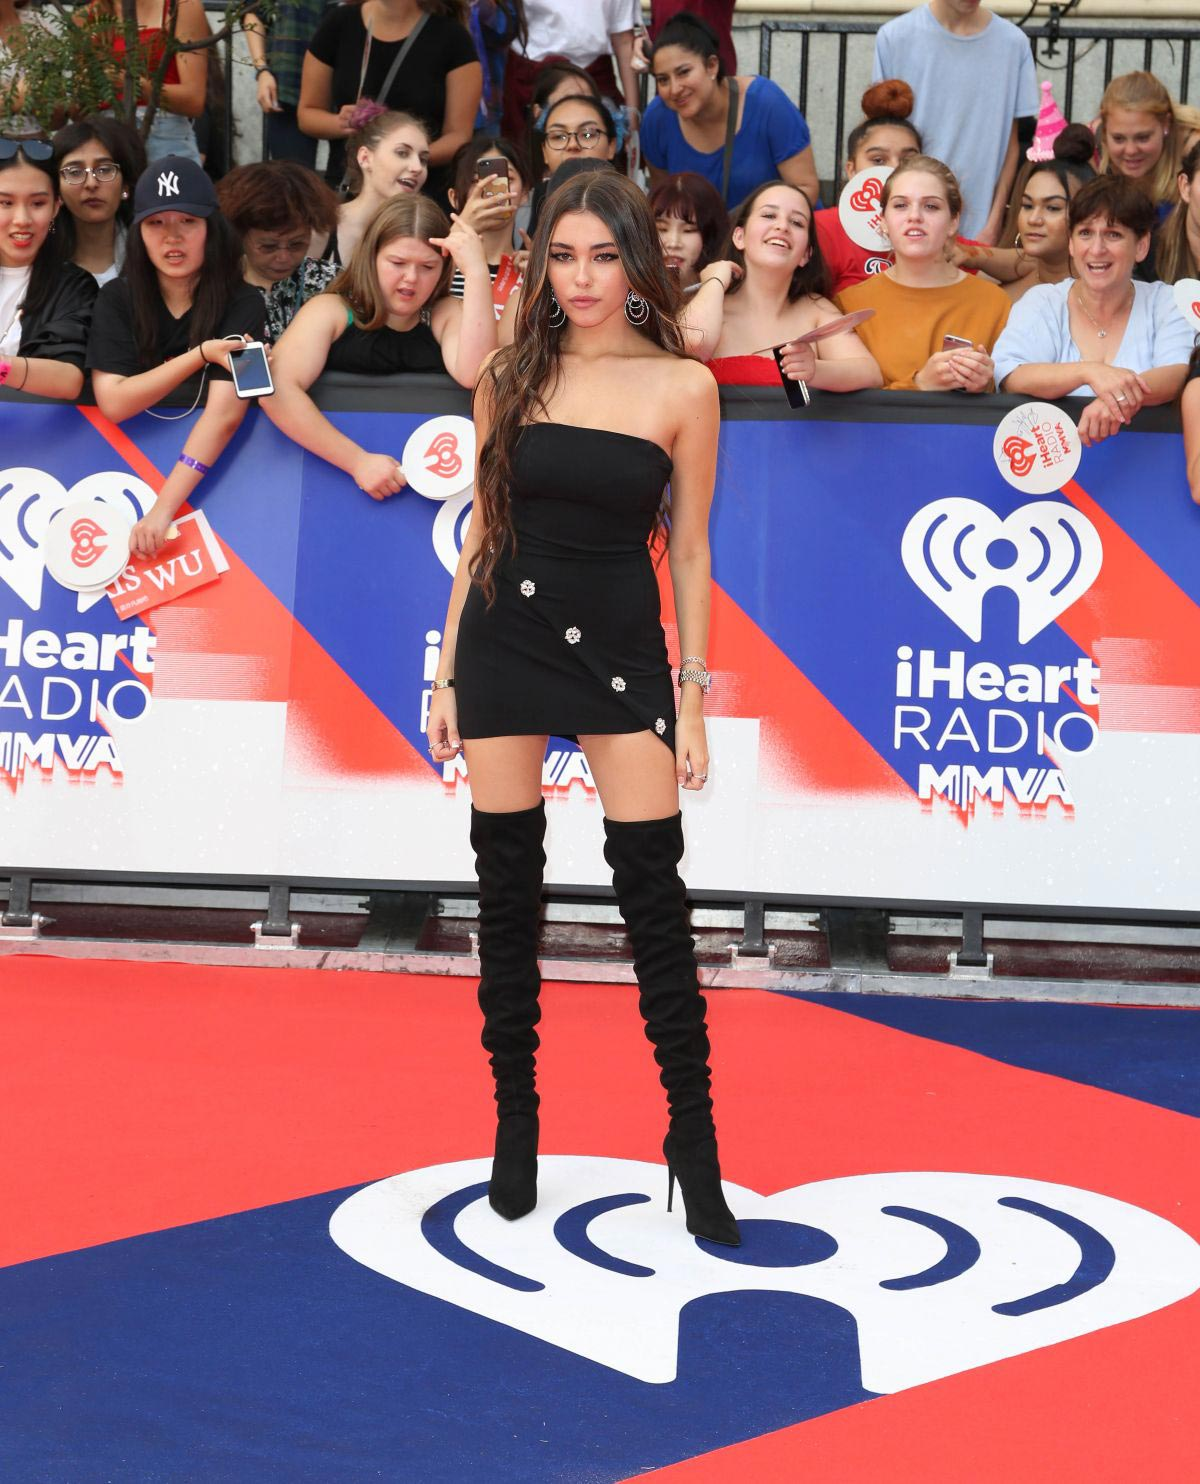 Madison Beer at 2018 Iheartradio Music Video Awards in Toronto 2018/08/26 1